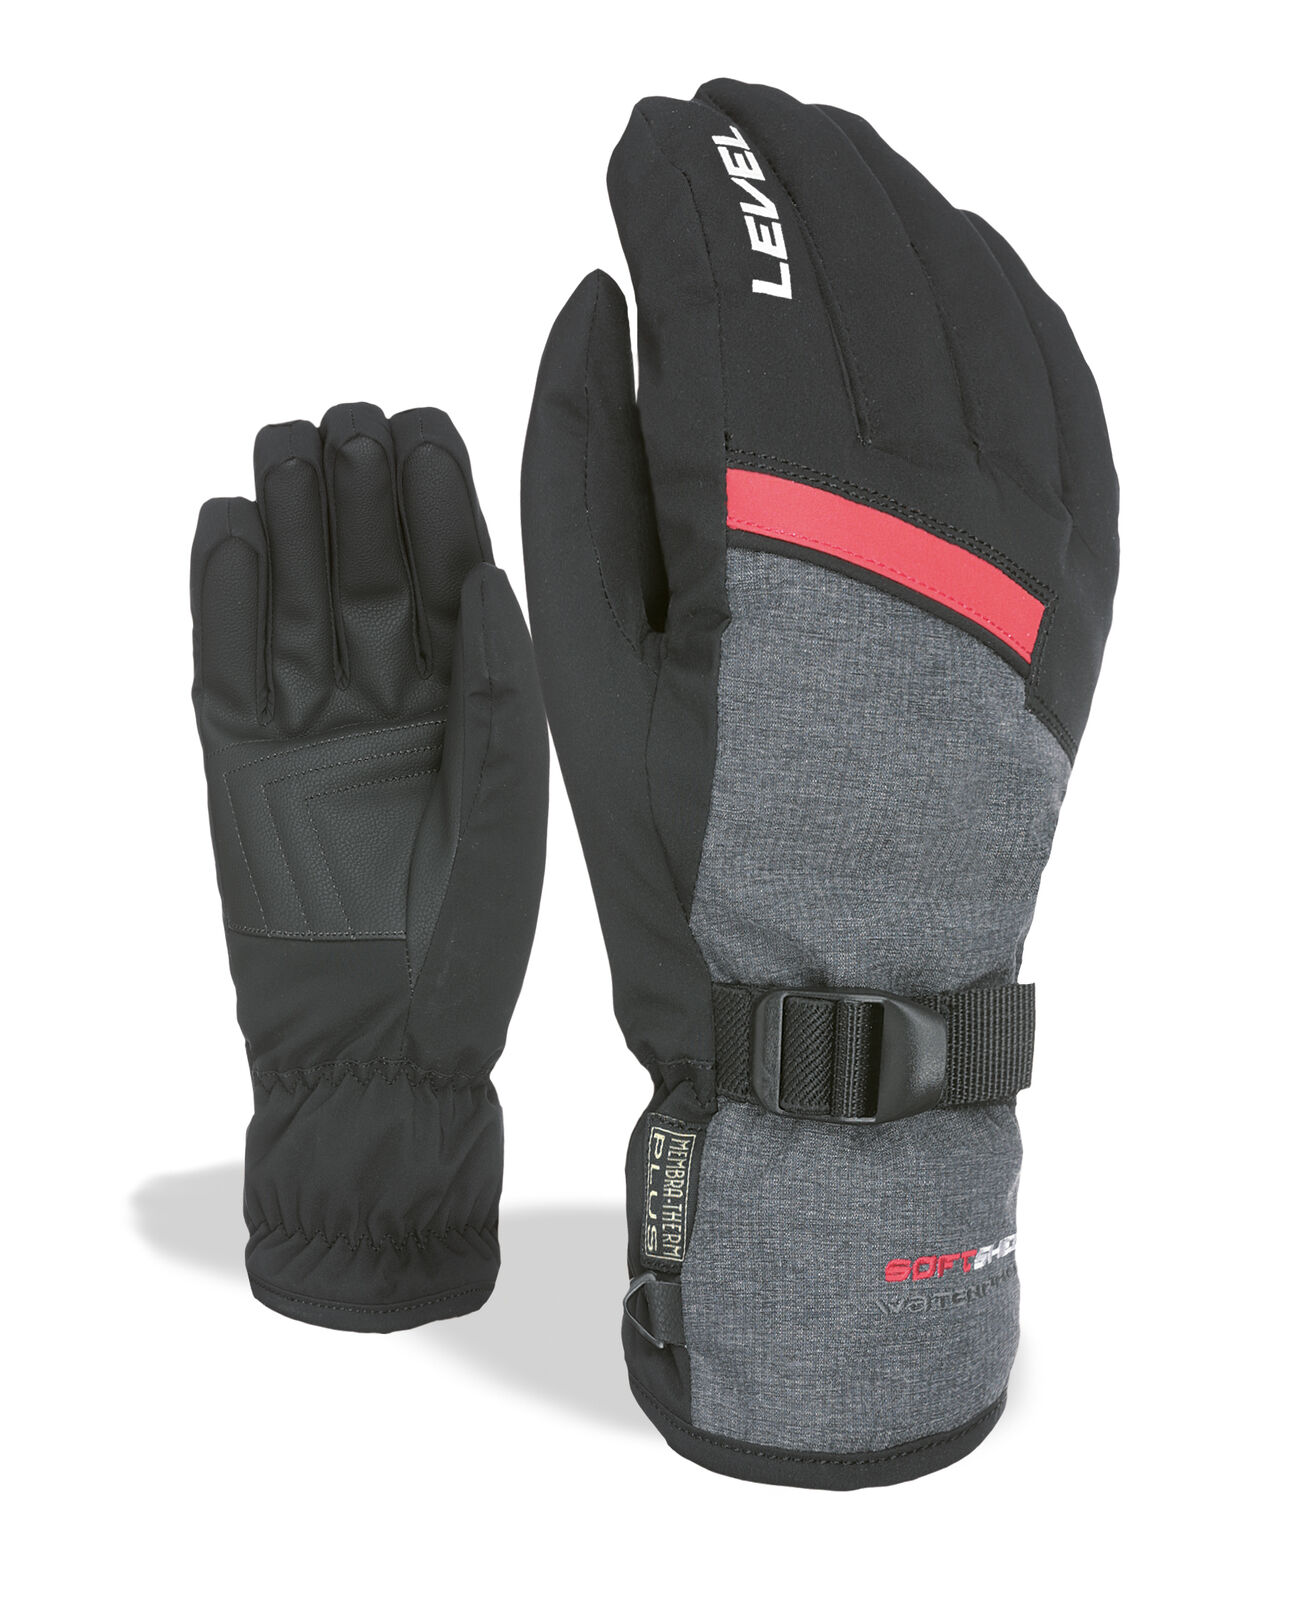 Level Guantes Héroe black Impermeable Transpirable Cálidos